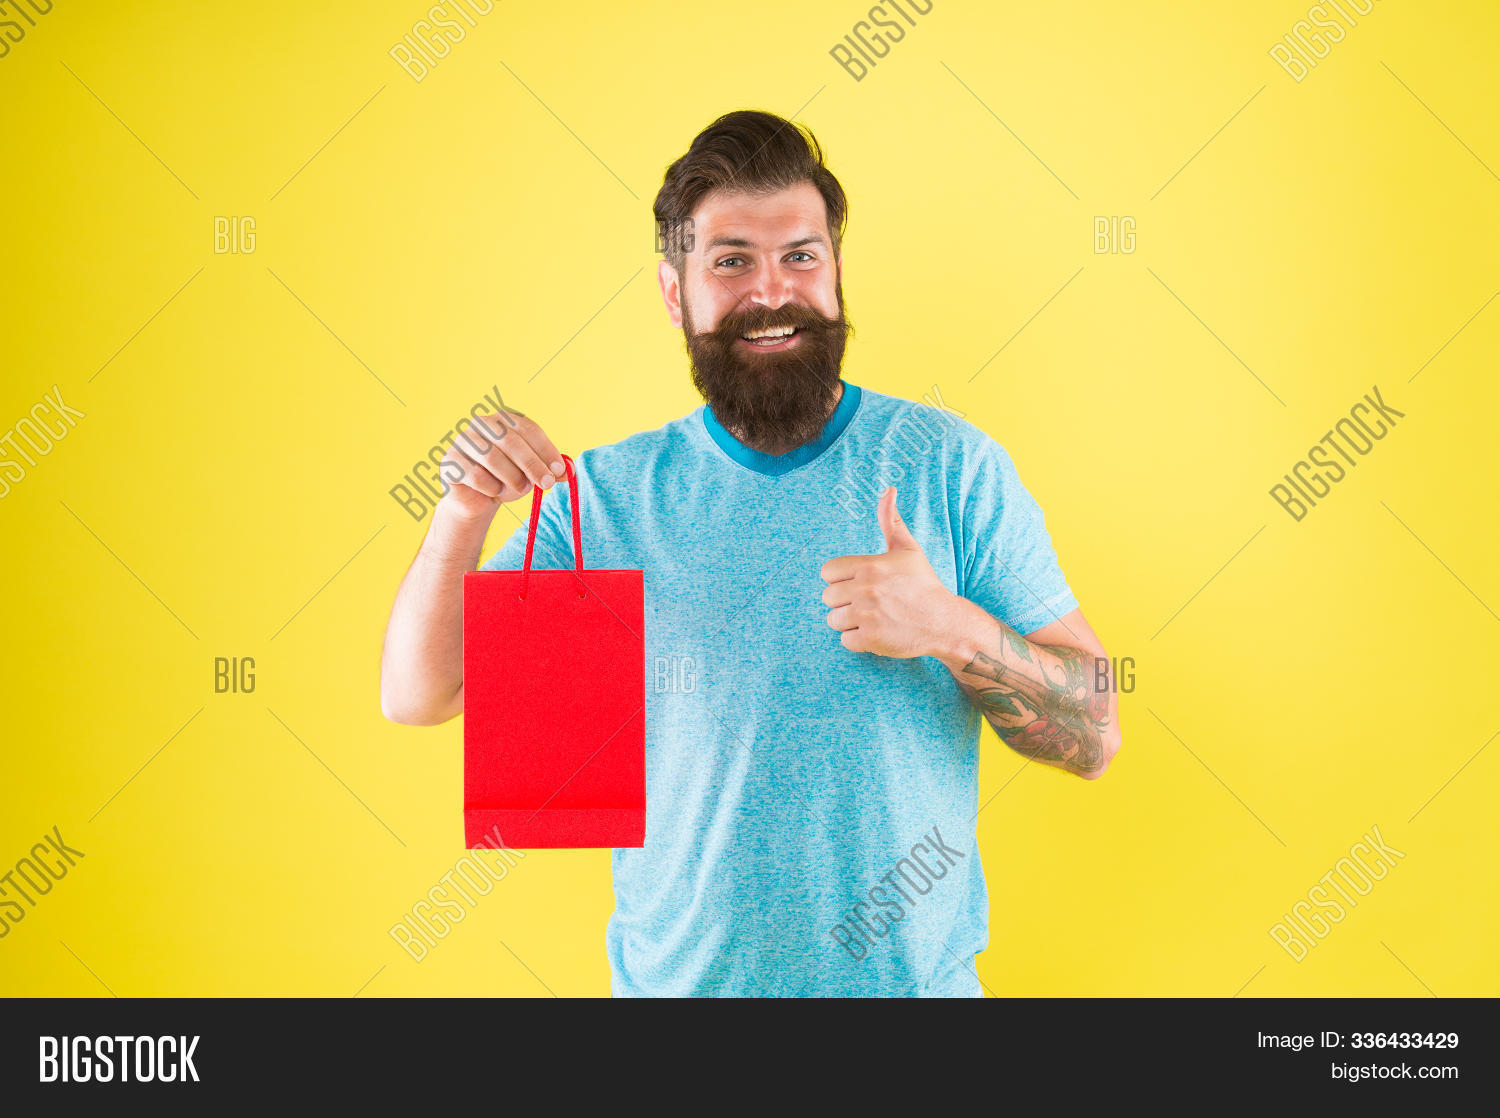 pleasant prices here. cyber monday concept. little pleasantness. bearded man go shopping. store for men. mature male beard with purchase. happy hipster hold red paperbag. best offer. Man with package.